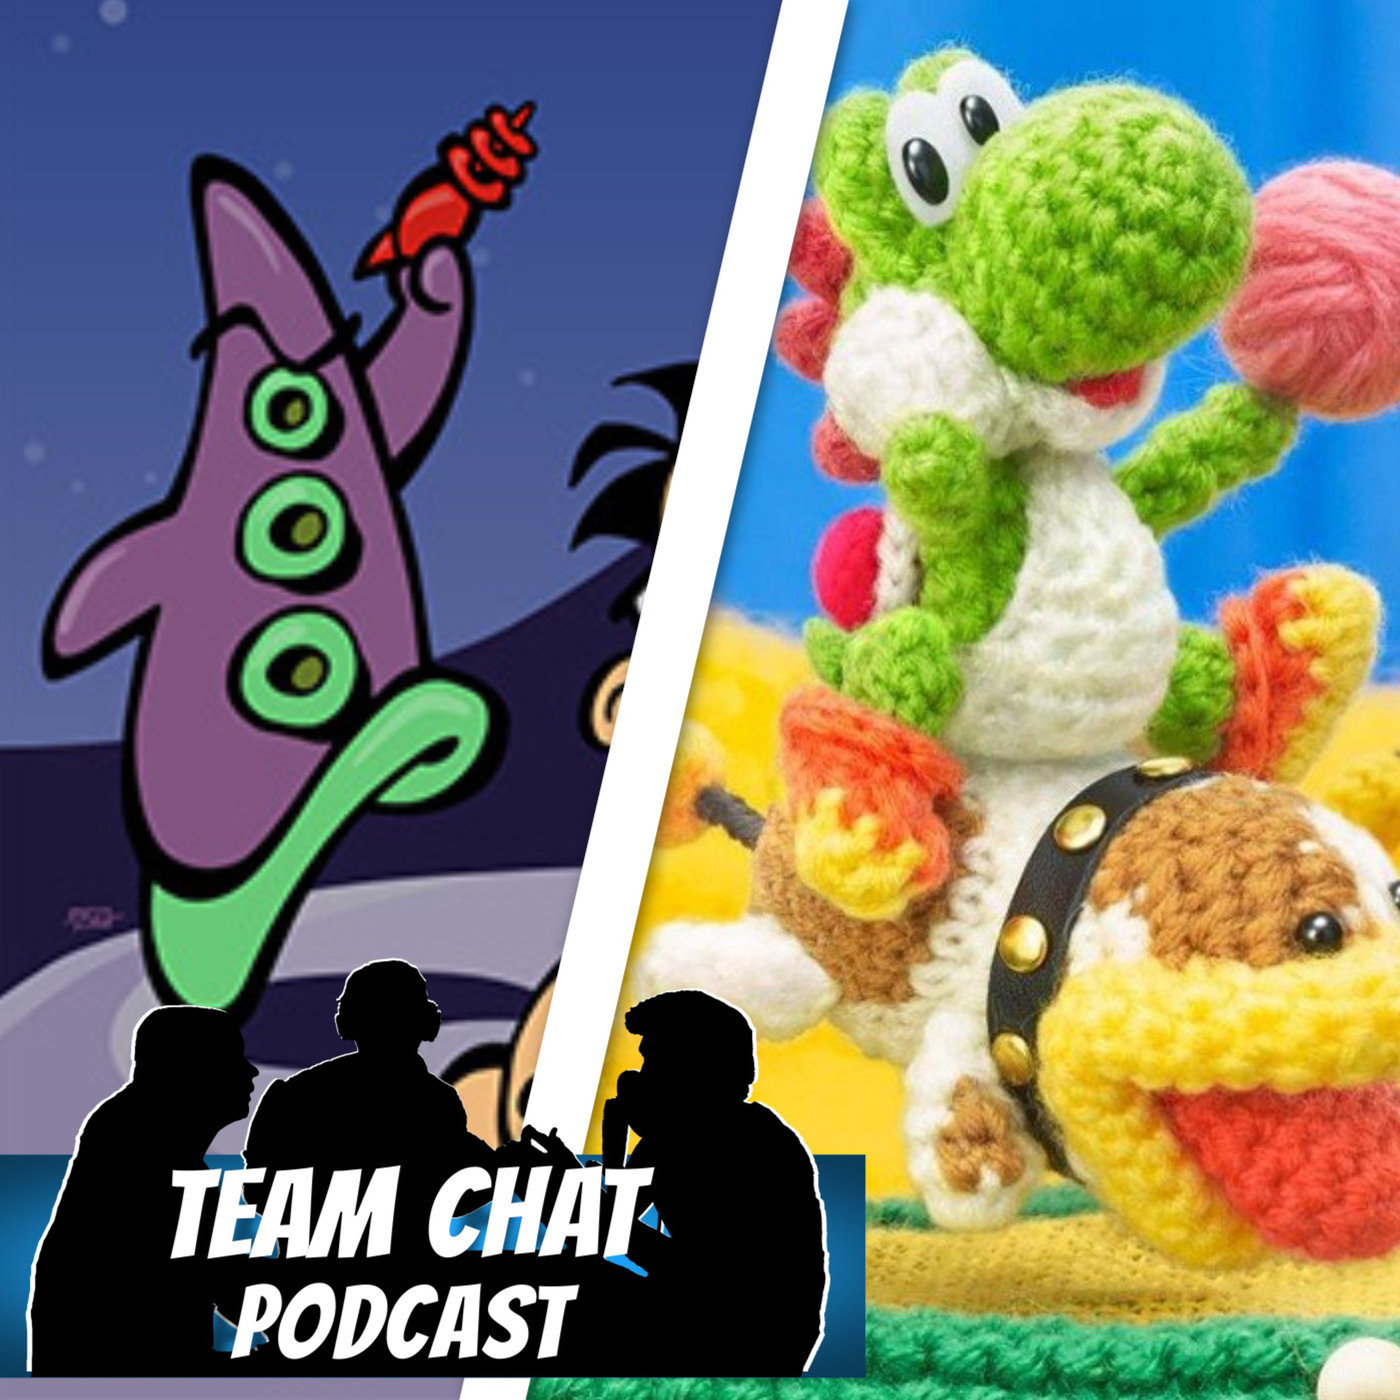 Team Chat Podcast: A Video Game Podcast 150: Ghosts of Games Past - Team Chat Podcast Episode 144